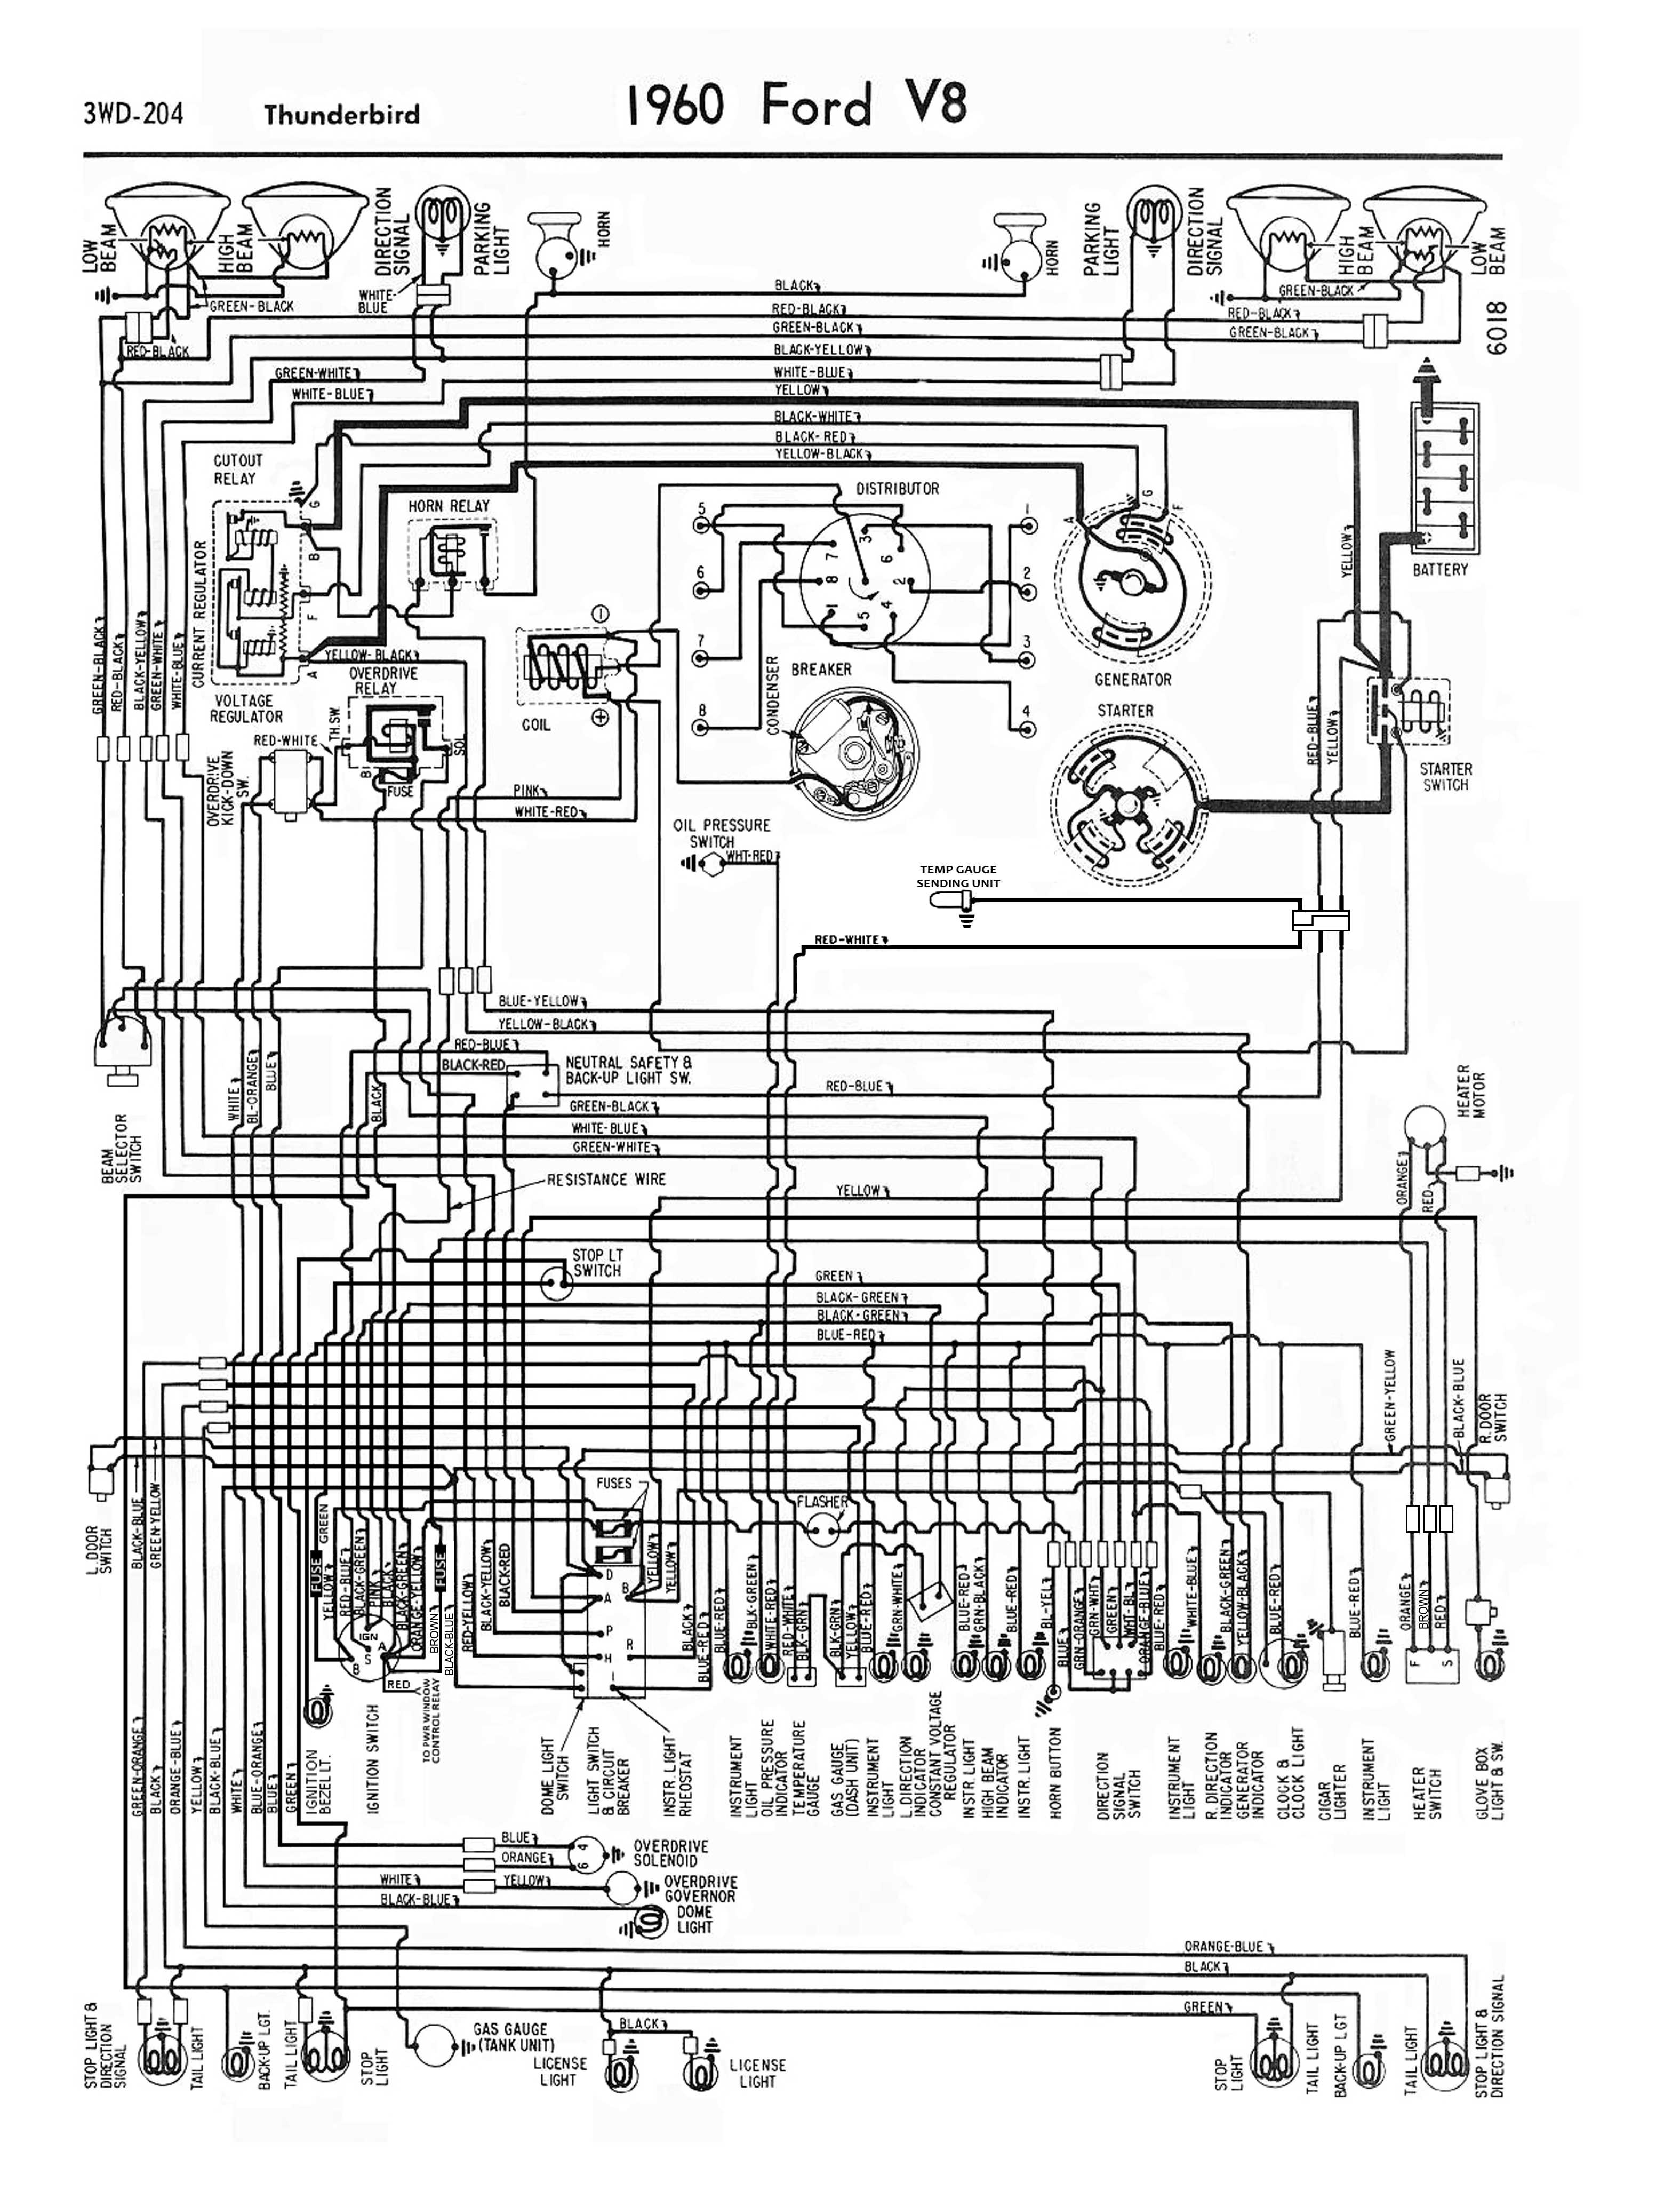 1968 falcon wiring diagram 1958 68 ford electrical schematics  1958 68 ford electrical schematics